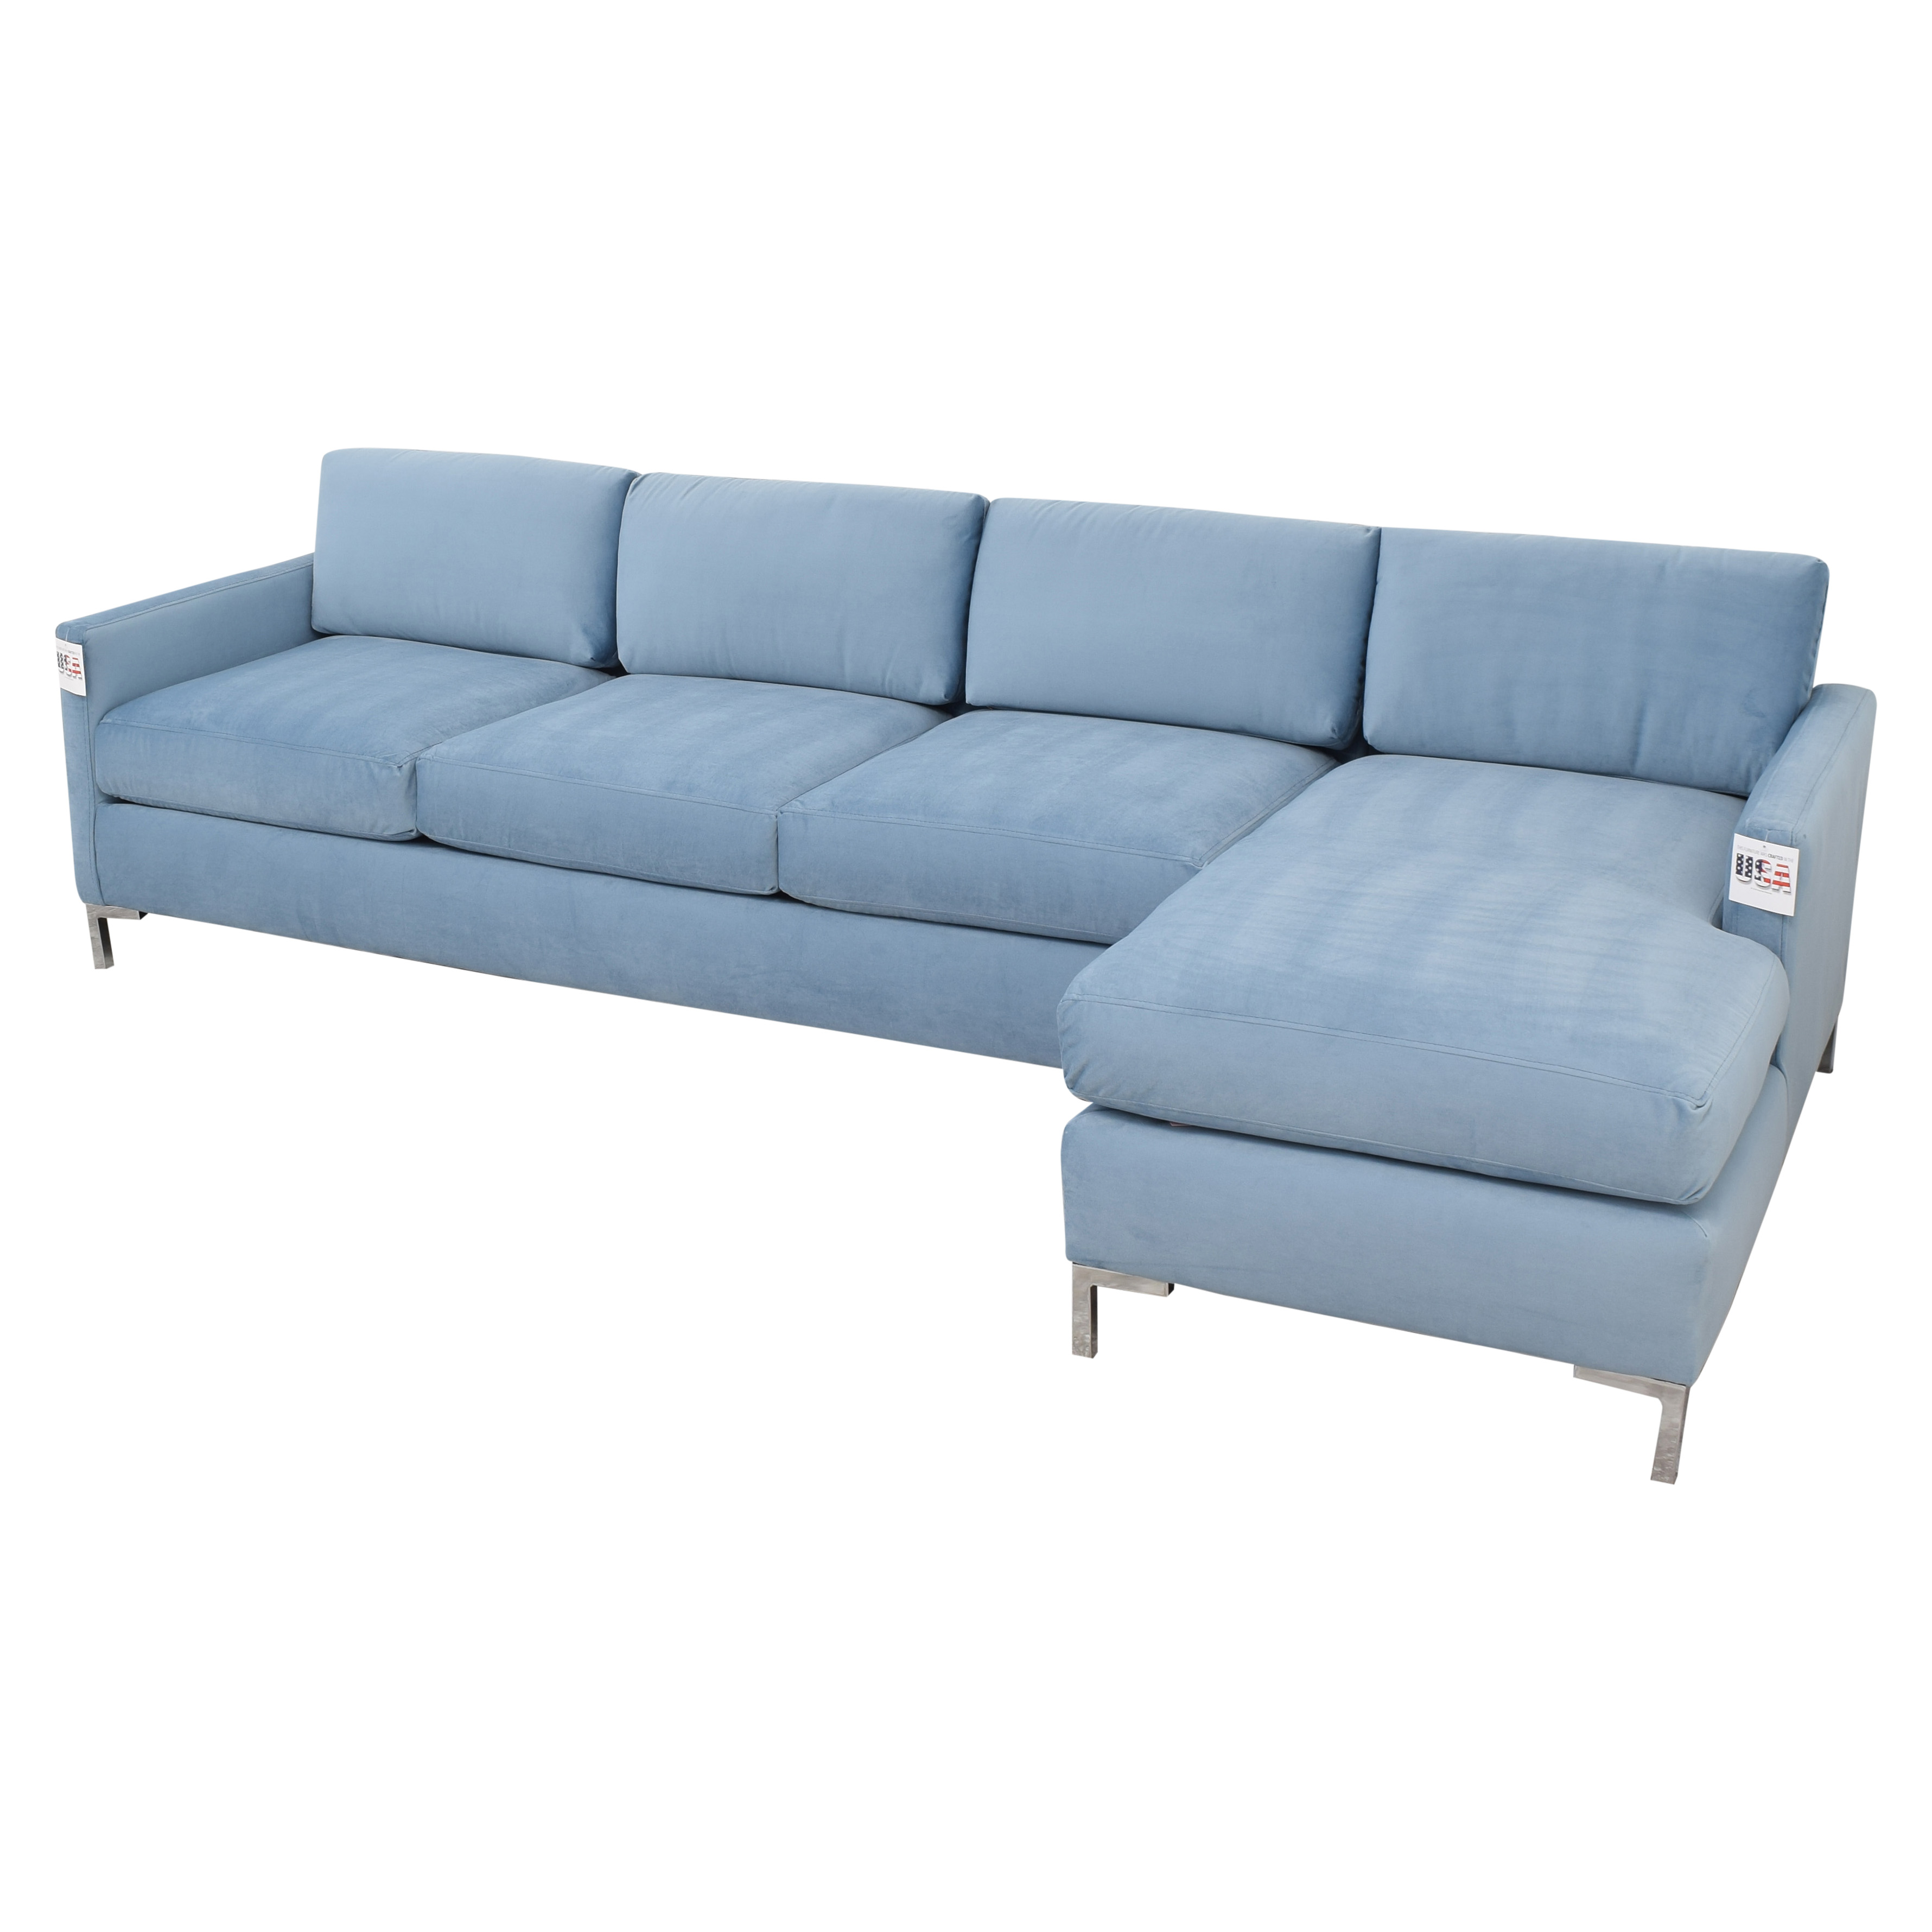 The Inside Modern Sectional / Sectionals